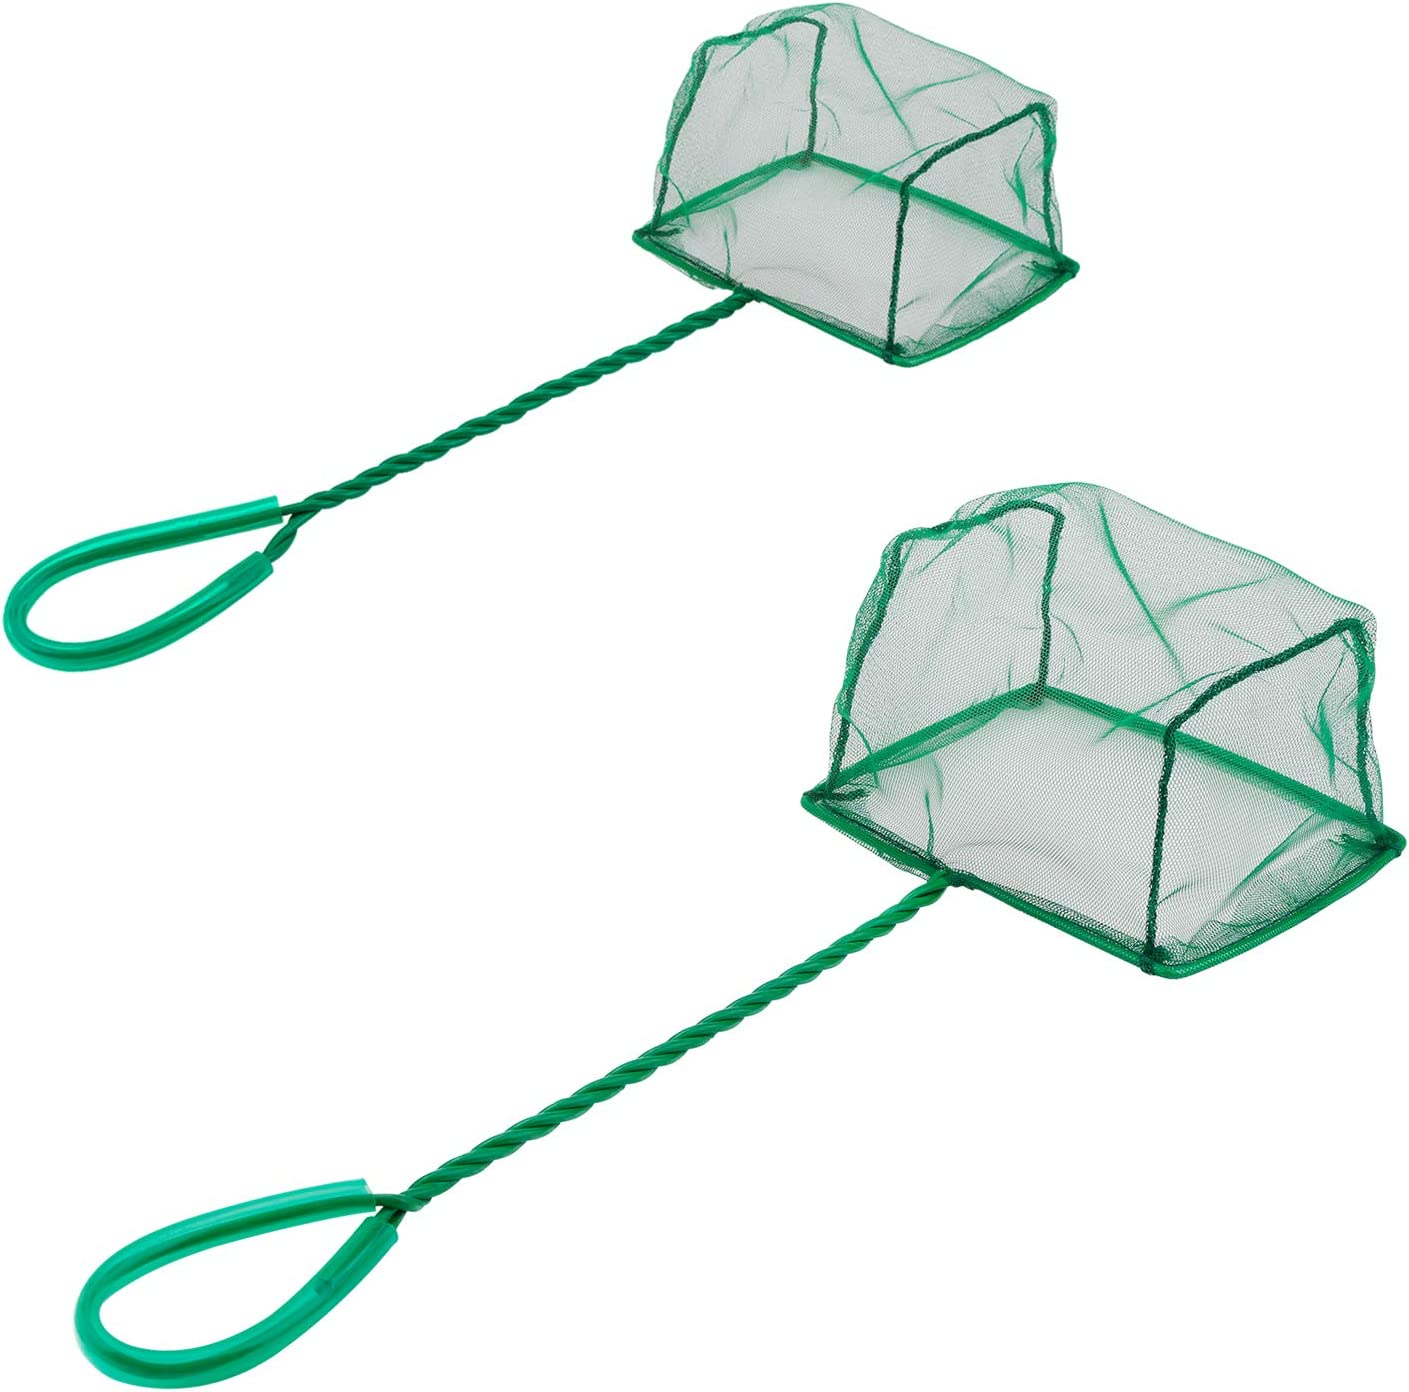 Pawfly Aquarium Fish Net Set Fish Catch Nets with Plastic Handle